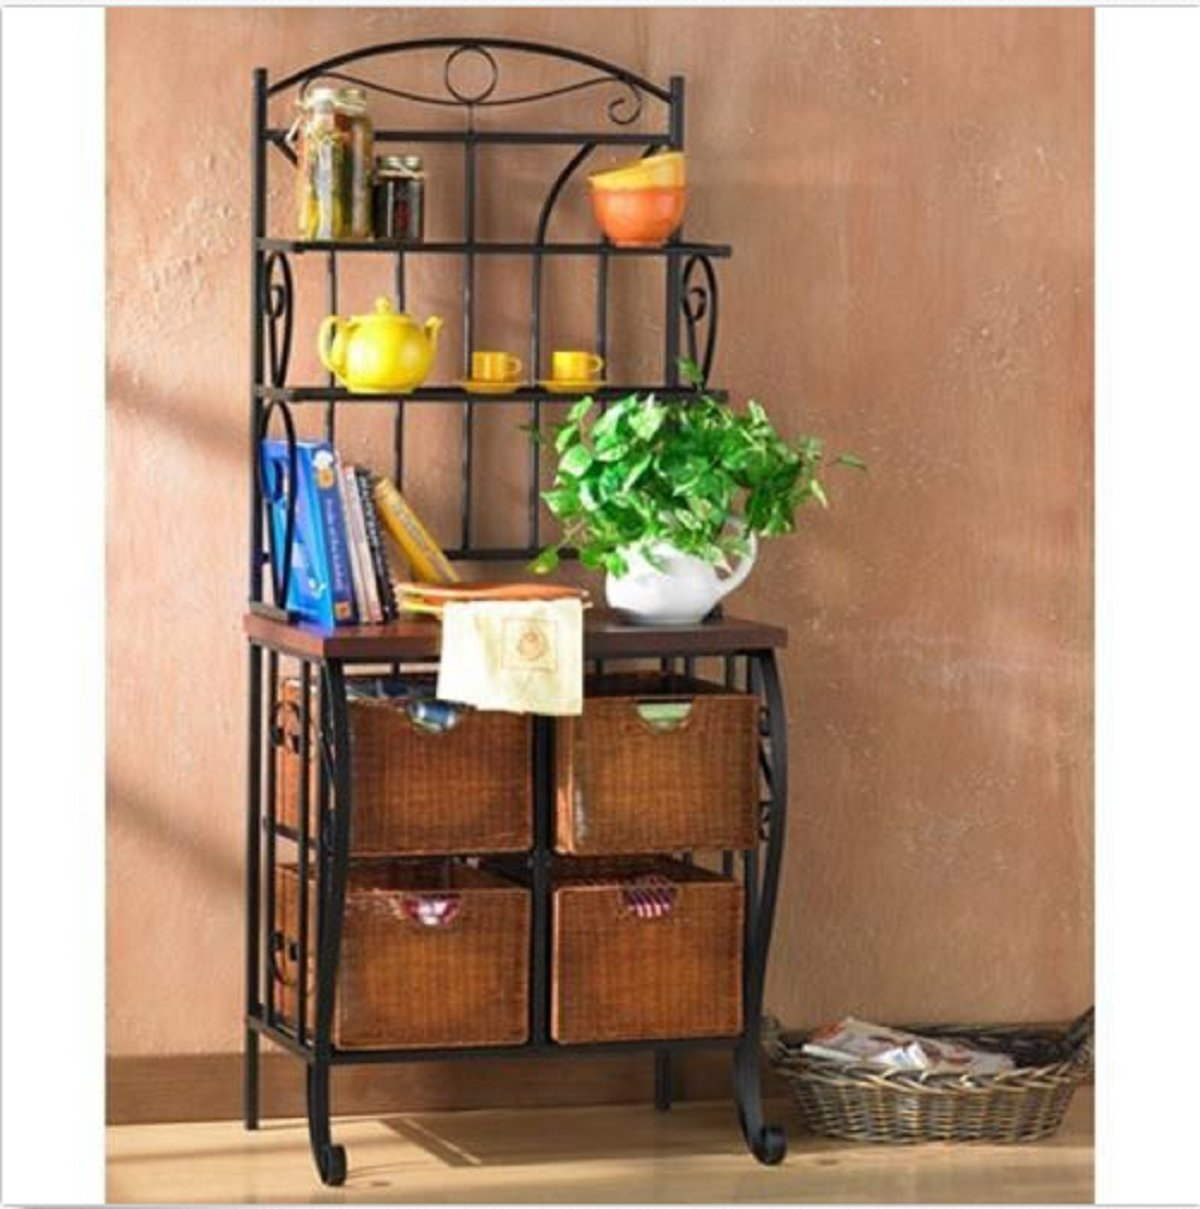 Bakers Classically styled, iron framed bakers rack Rack Storage Kitchen Metal Shelf Baker Stand Shelves Wine Iron Wicker Includes 4 wicker baskets for storage